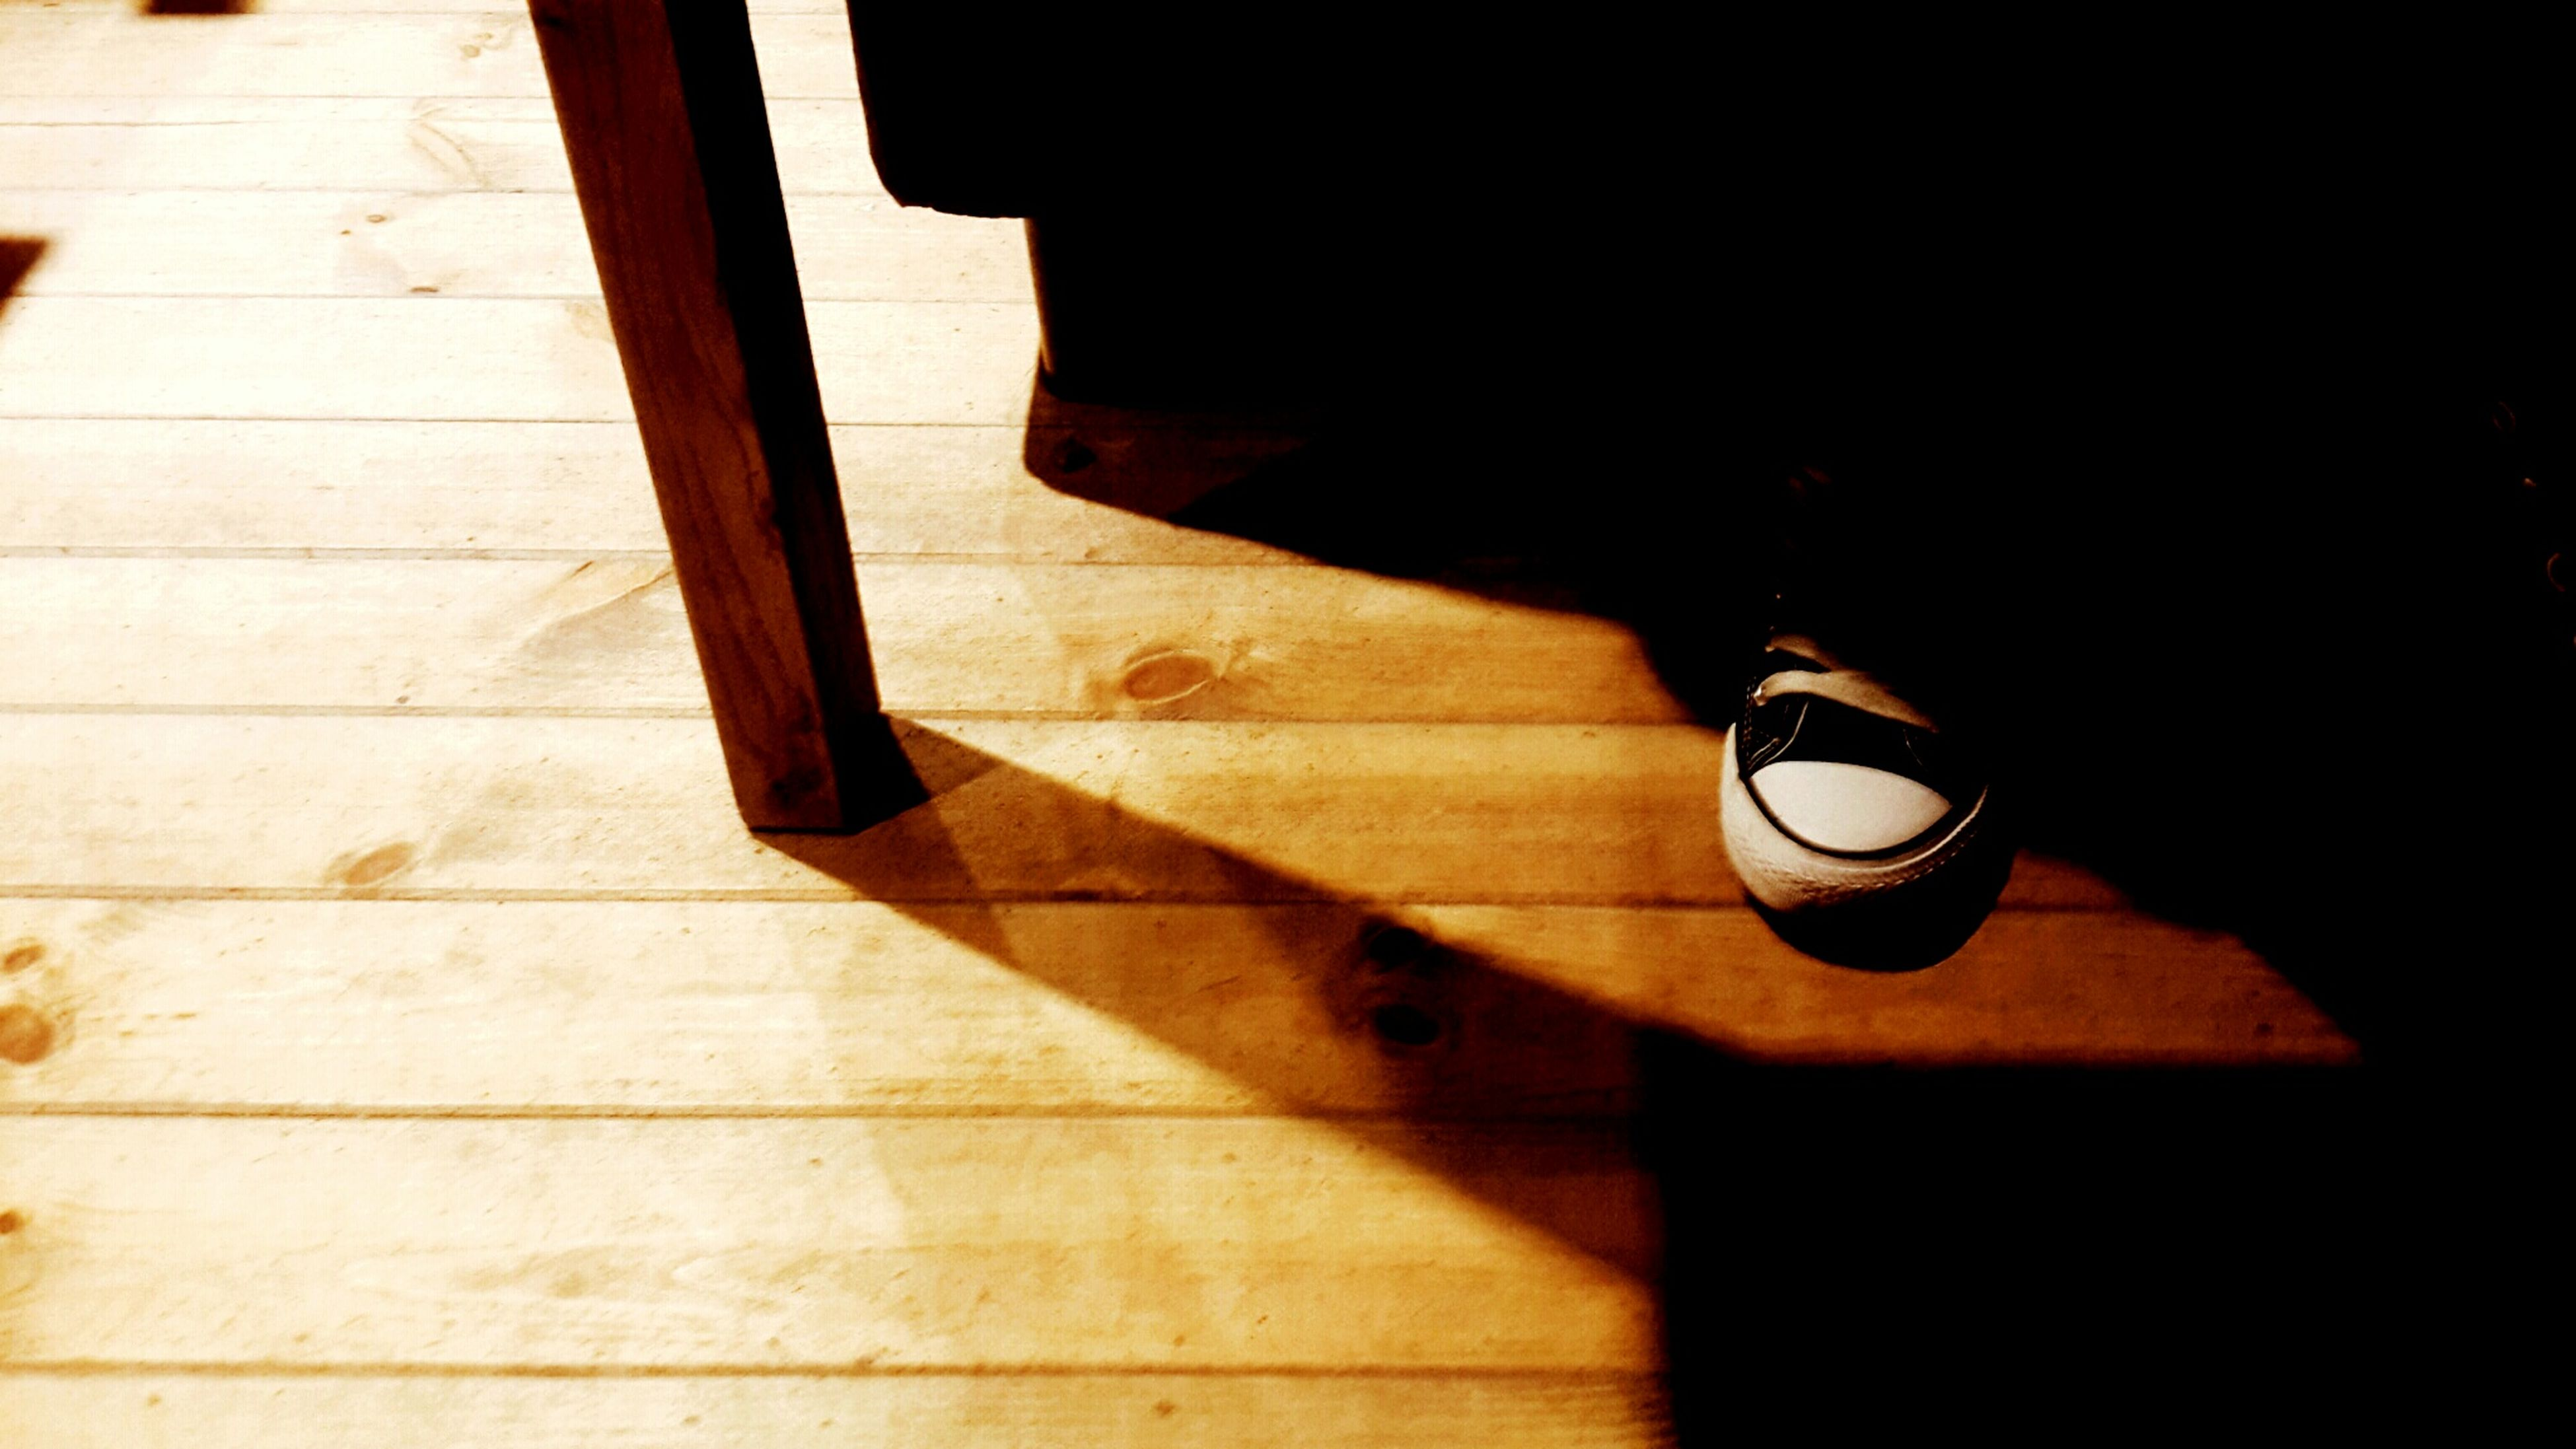 wood - material, indoors, high angle view, shadow, wooden, table, wood, flooring, hardwood floor, close-up, sunlight, no people, night, reflection, illuminated, black color, home interior, still life, floor